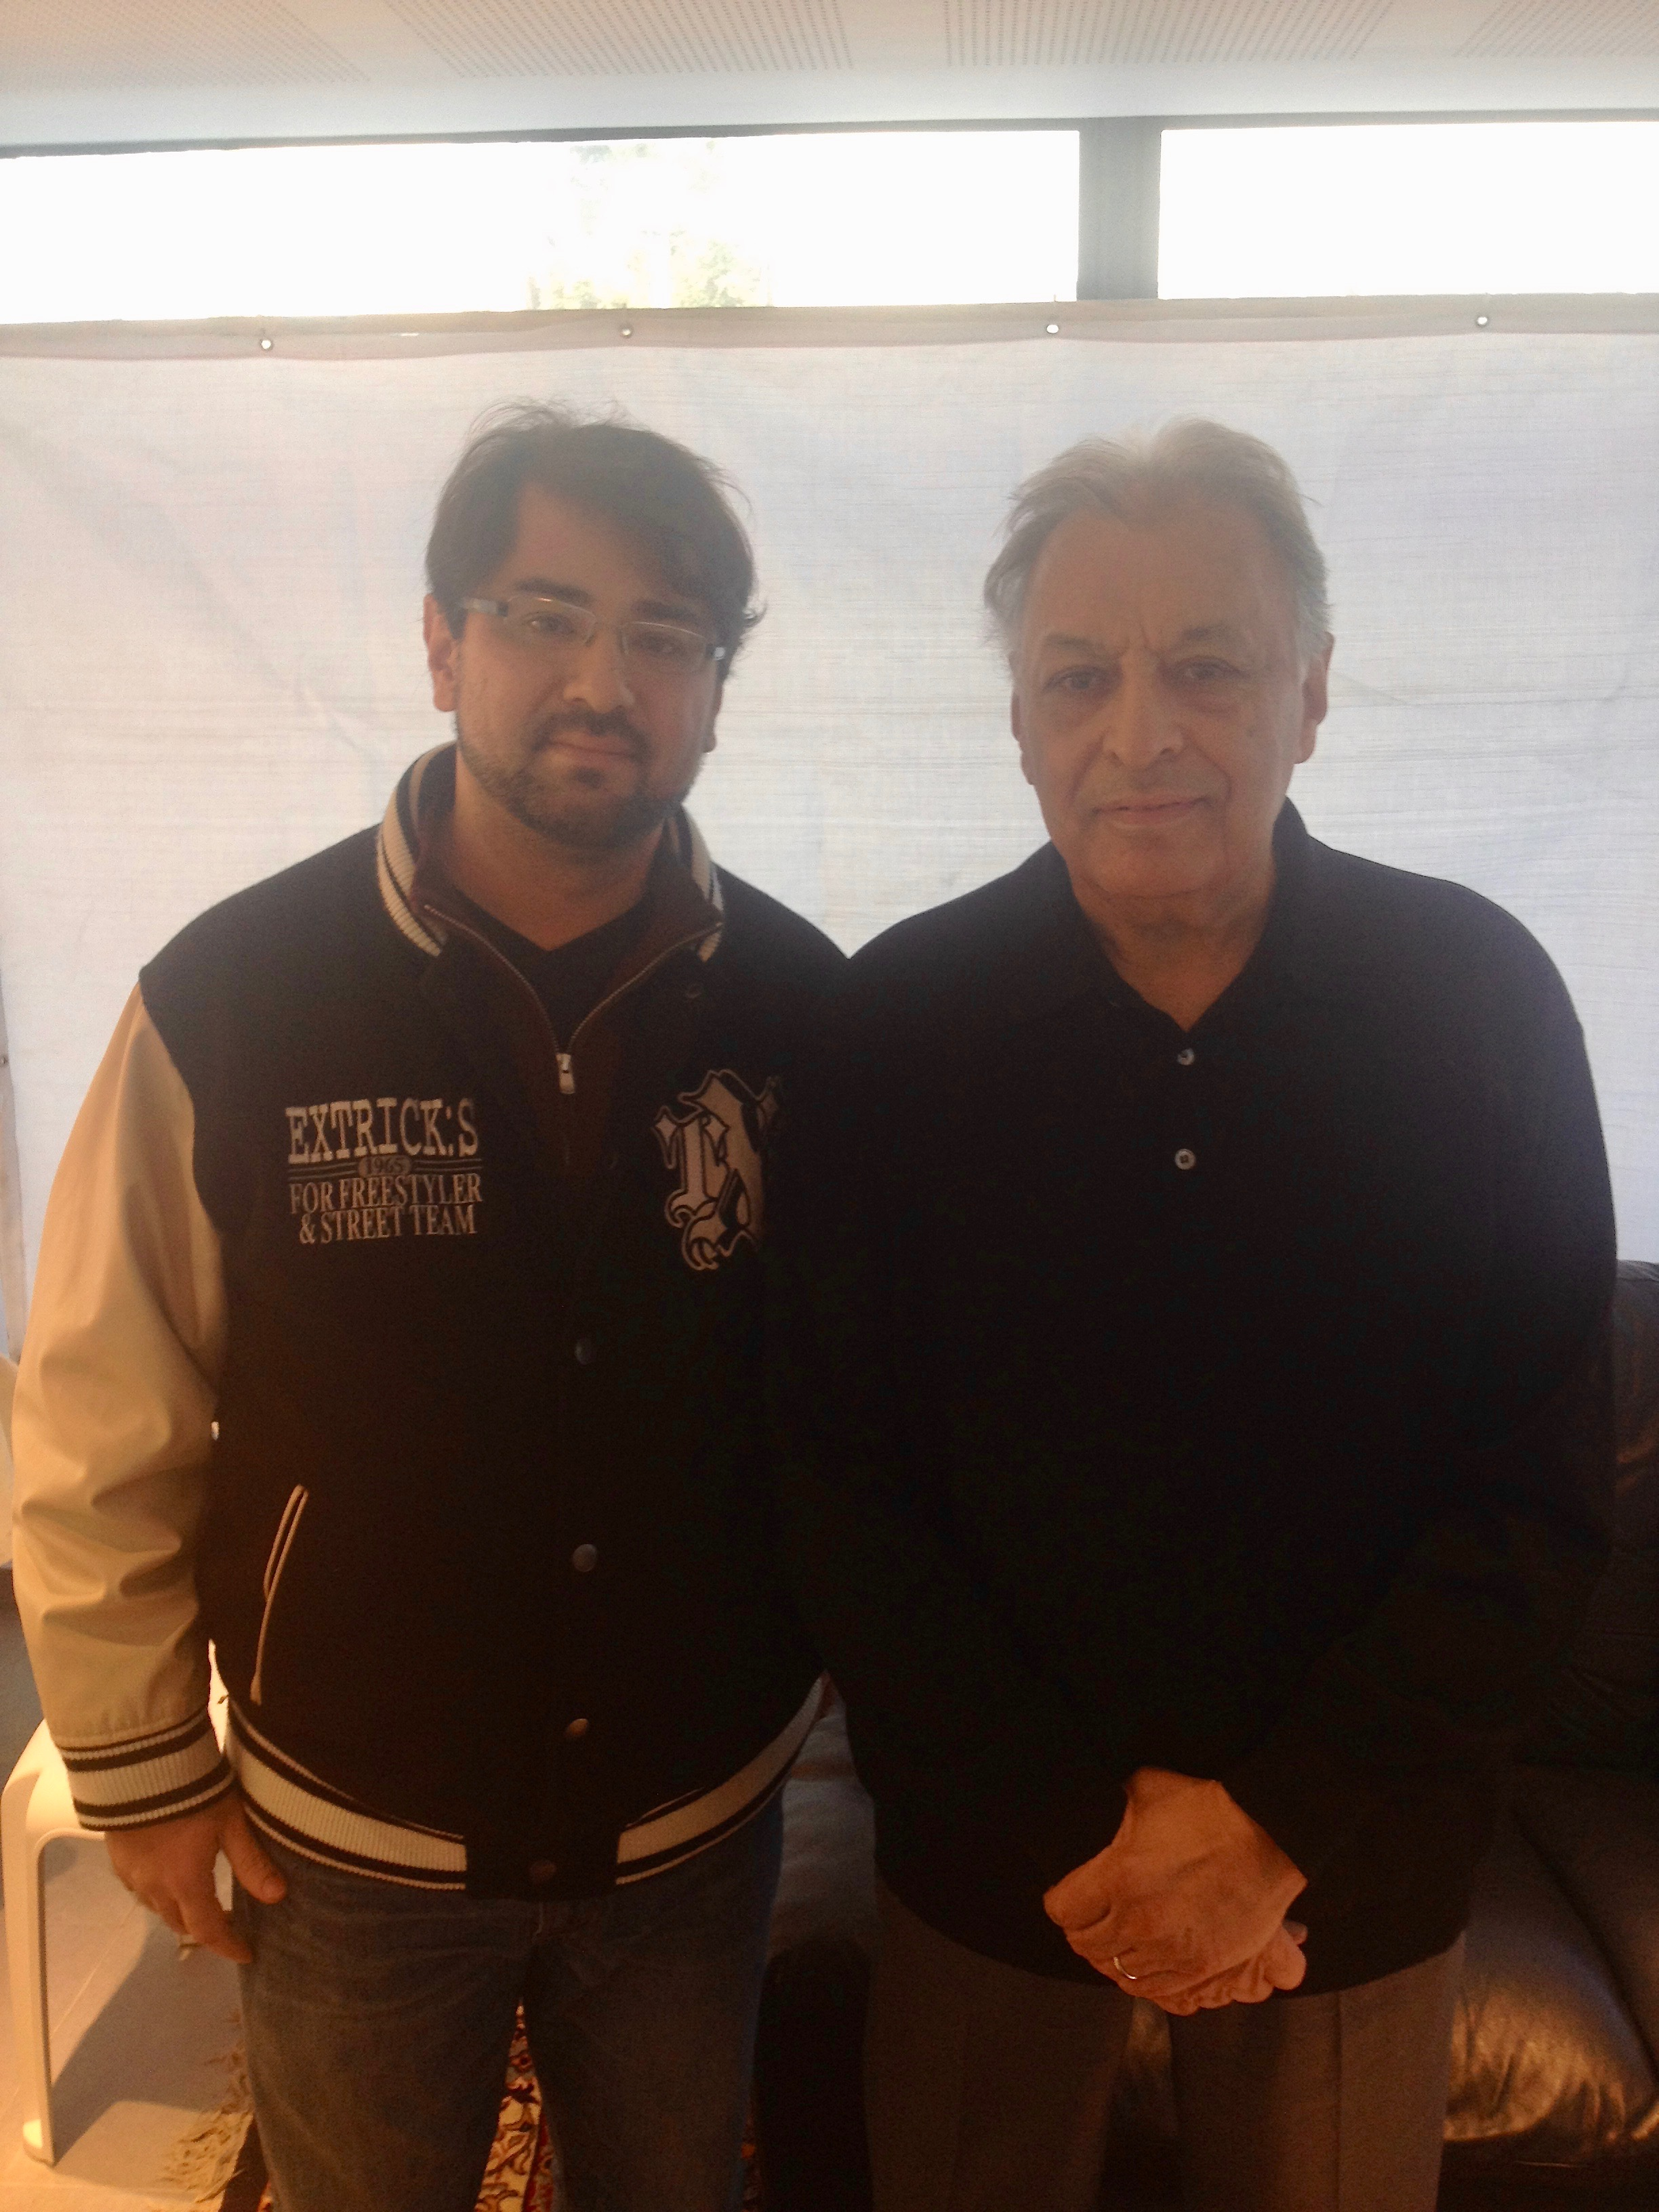 With Mto Zubin Mehta